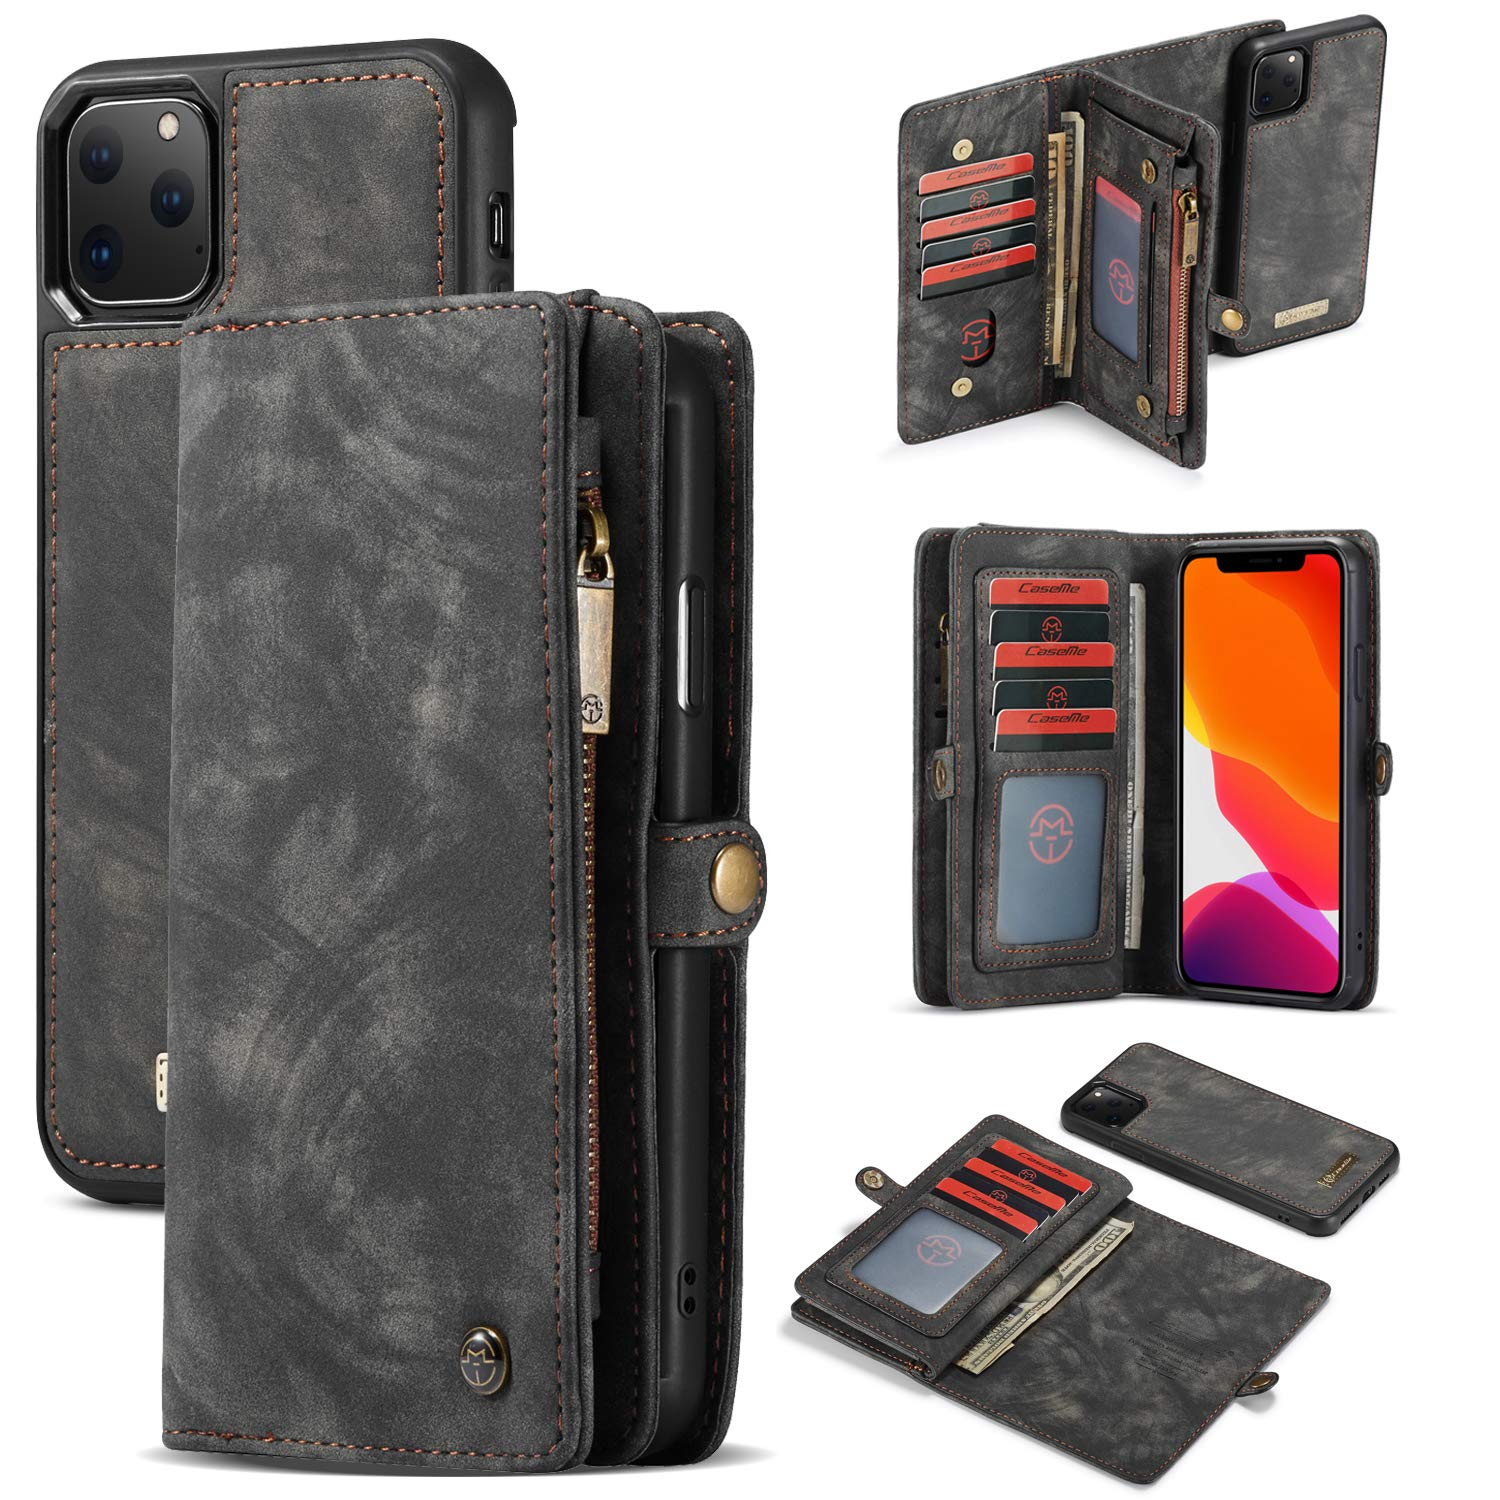 iPhone 11 Pro Case for Women, 【2019 New】 360° Stylish Wallet Case Full Body Protective Phone Cover 6.5 inch iPhone Cover Kickstand Back Shell Folio Purse with Card Slot for iPhone Xi Max 6.5 inch by Byoung